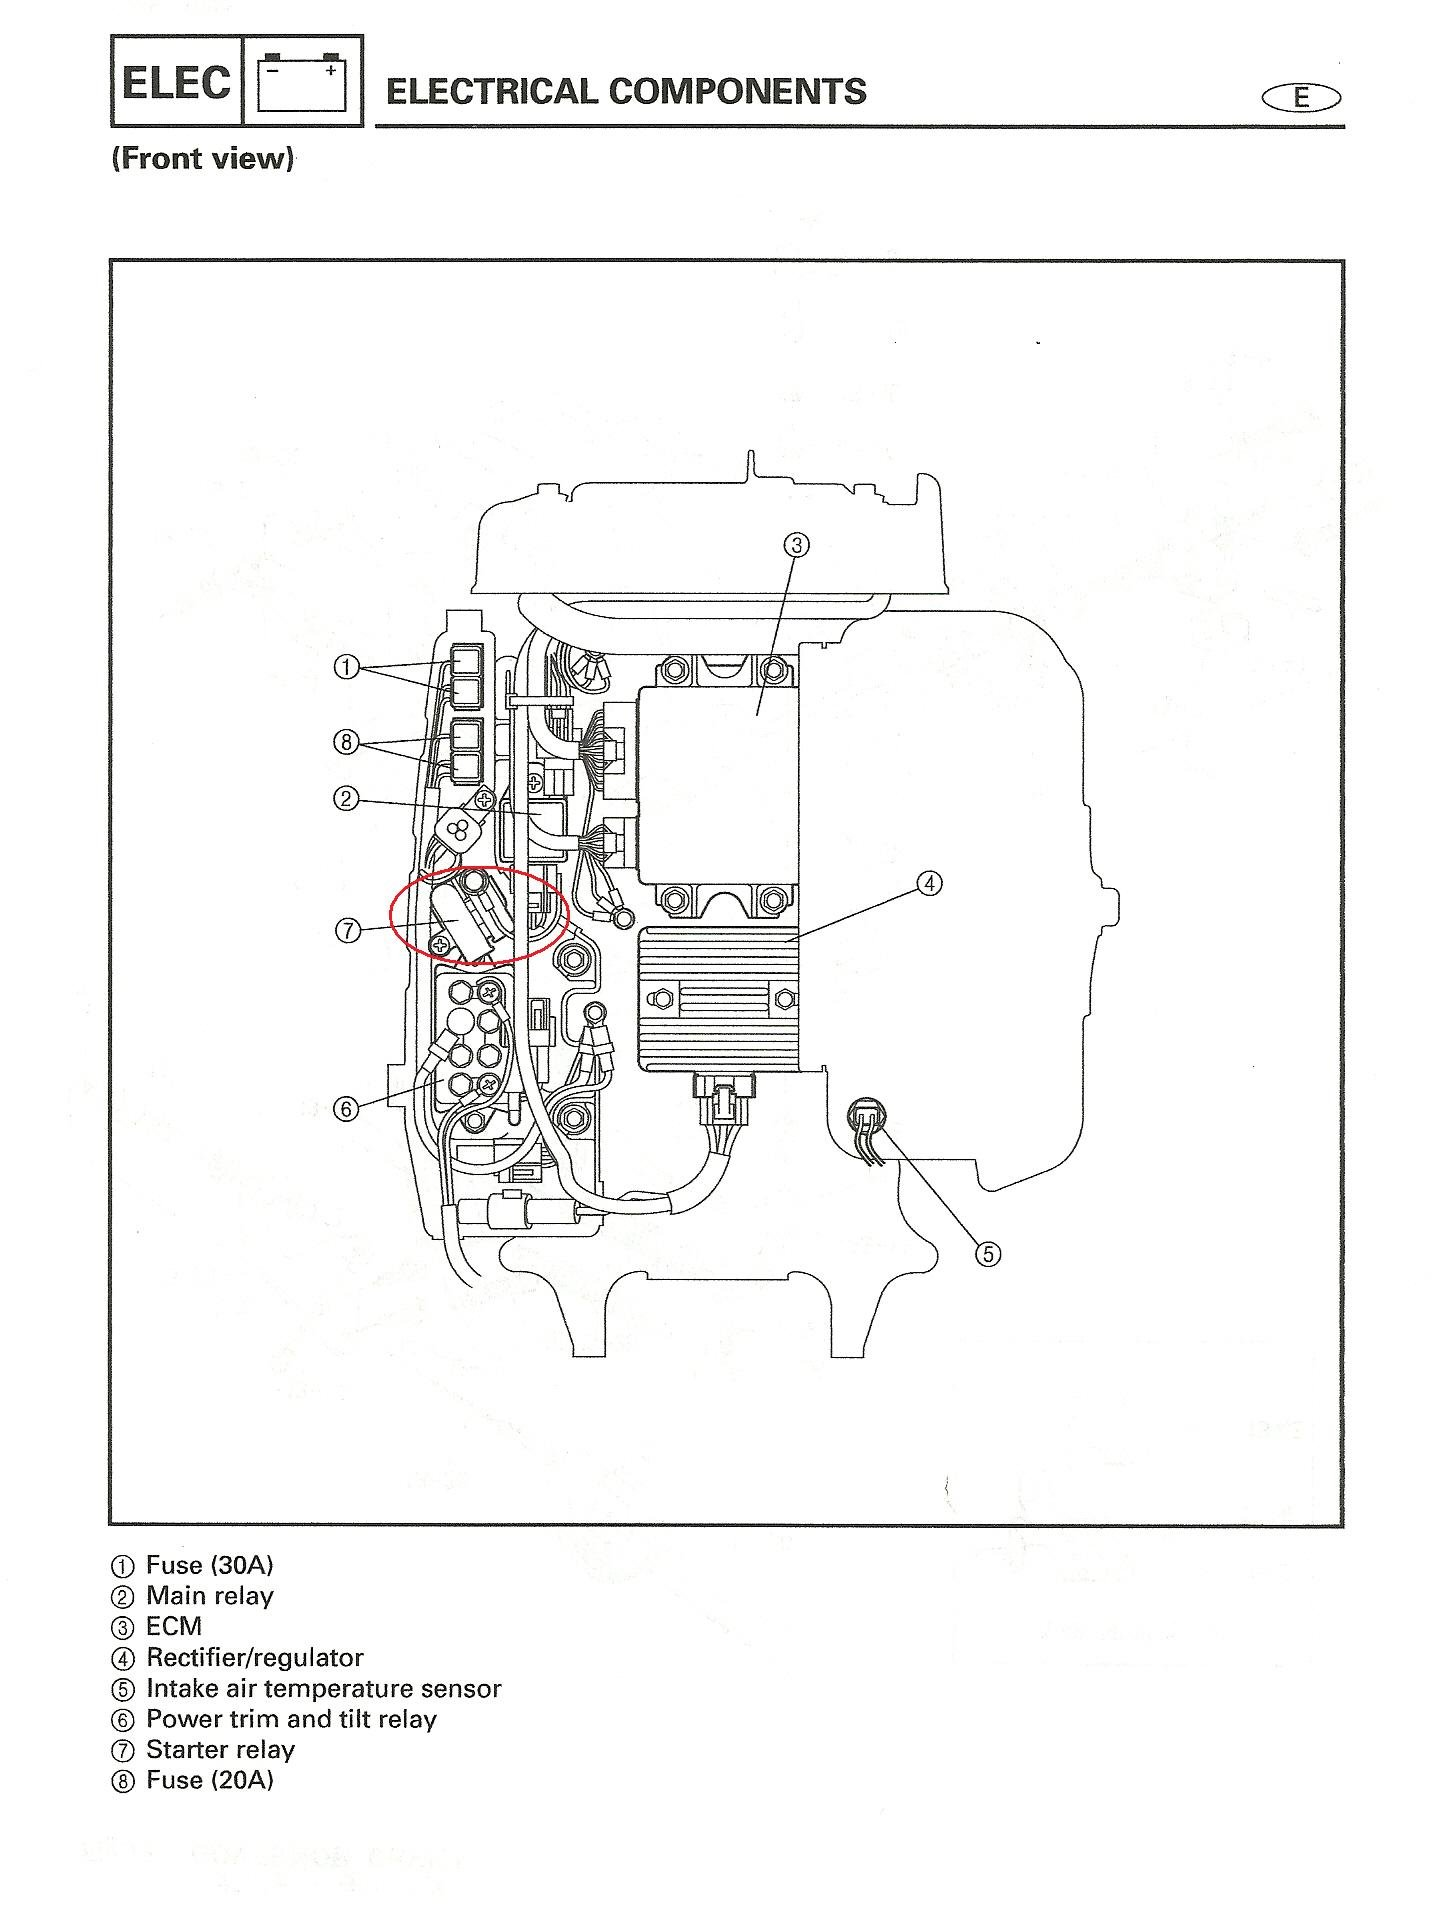 I Accidentally Connected Wrong Polarity Negative Wire To Positive Yamaha Rectifier Regulator Wiring Diagram Graphic